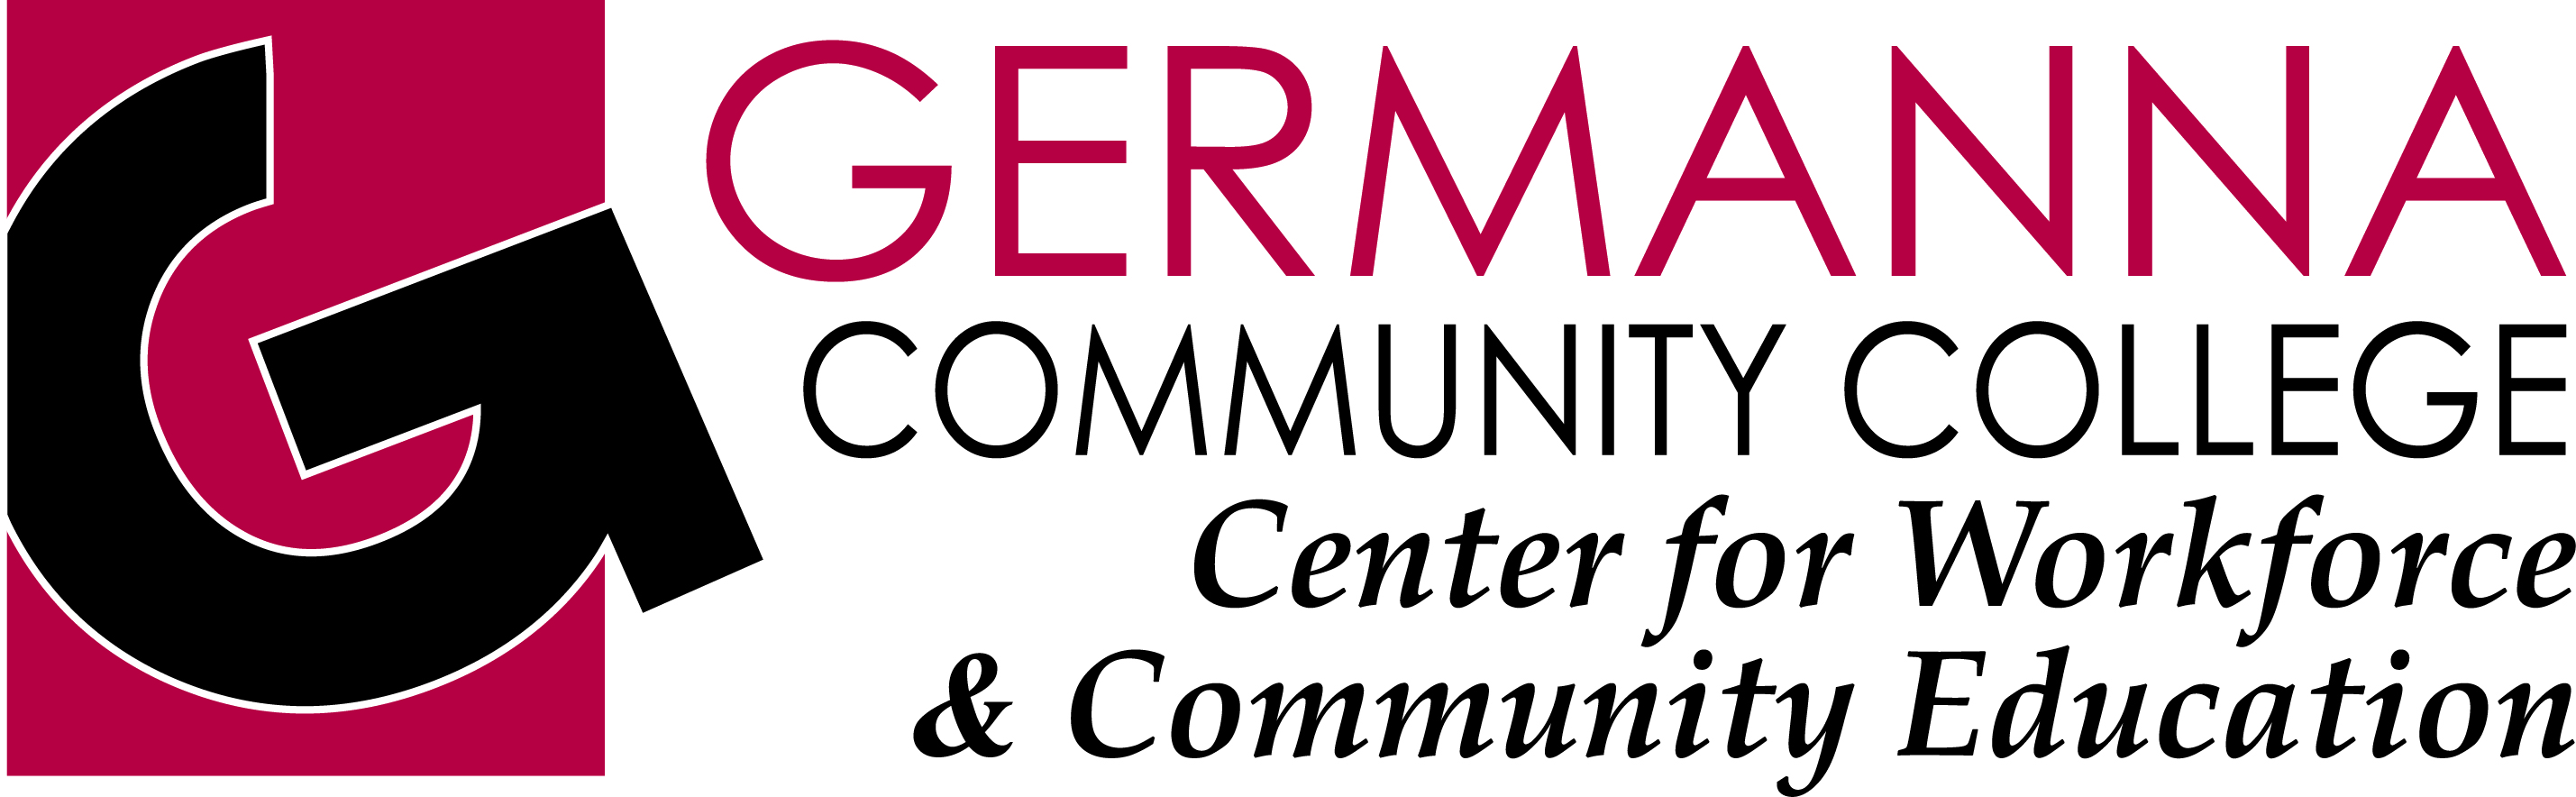 Germanna Workforce Class of the Week – Fundamentals of (EI) Emotional Intelligence